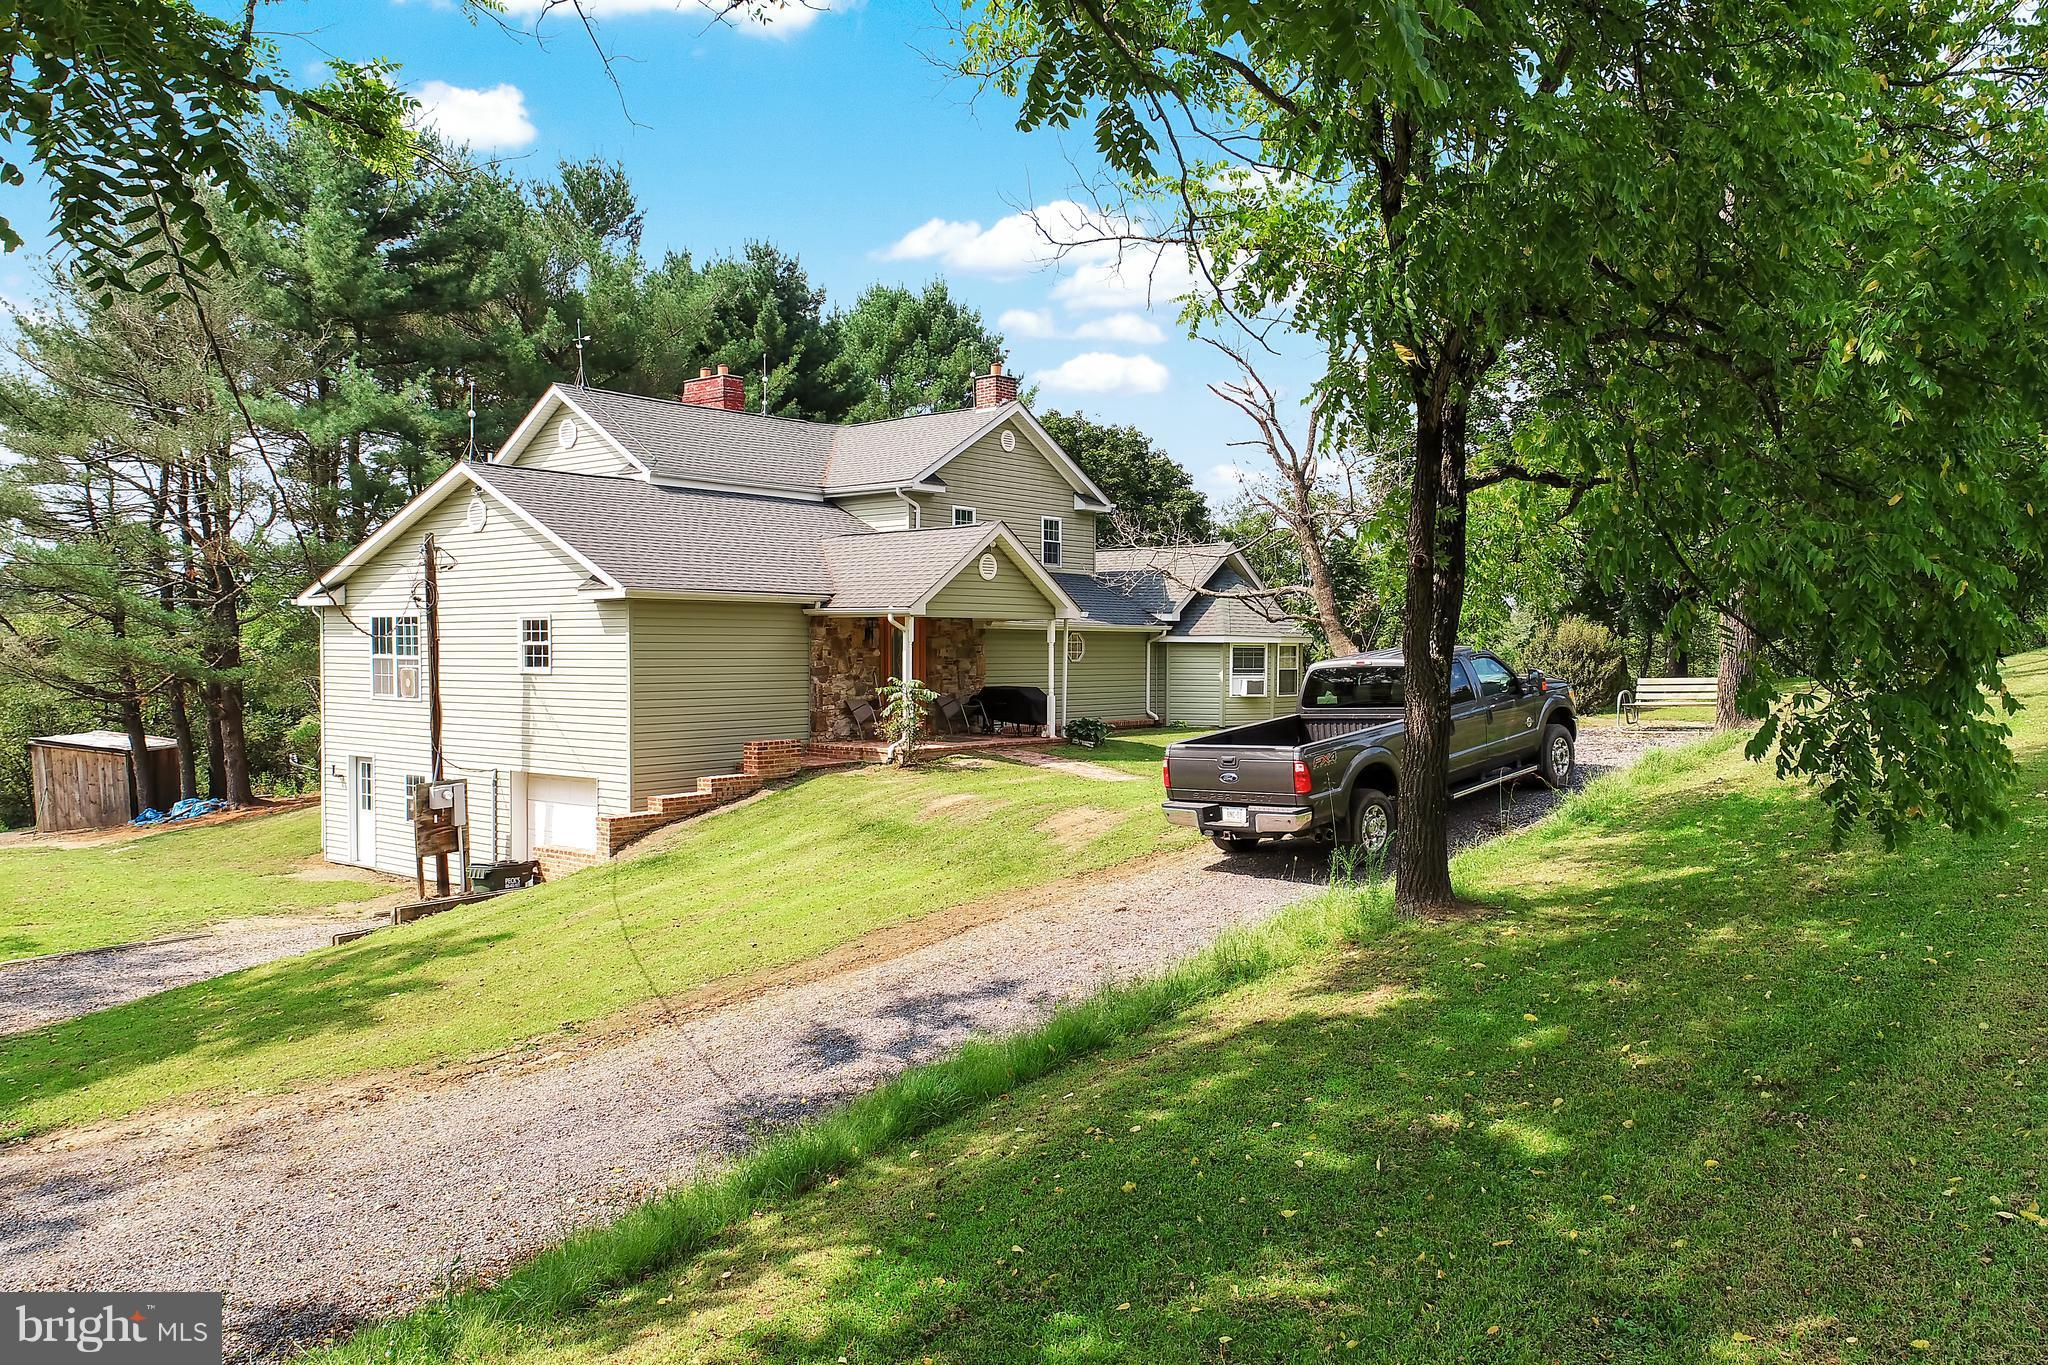 11387 TIMBER RIDGE ROAD, NEEDMORE, PA 17238